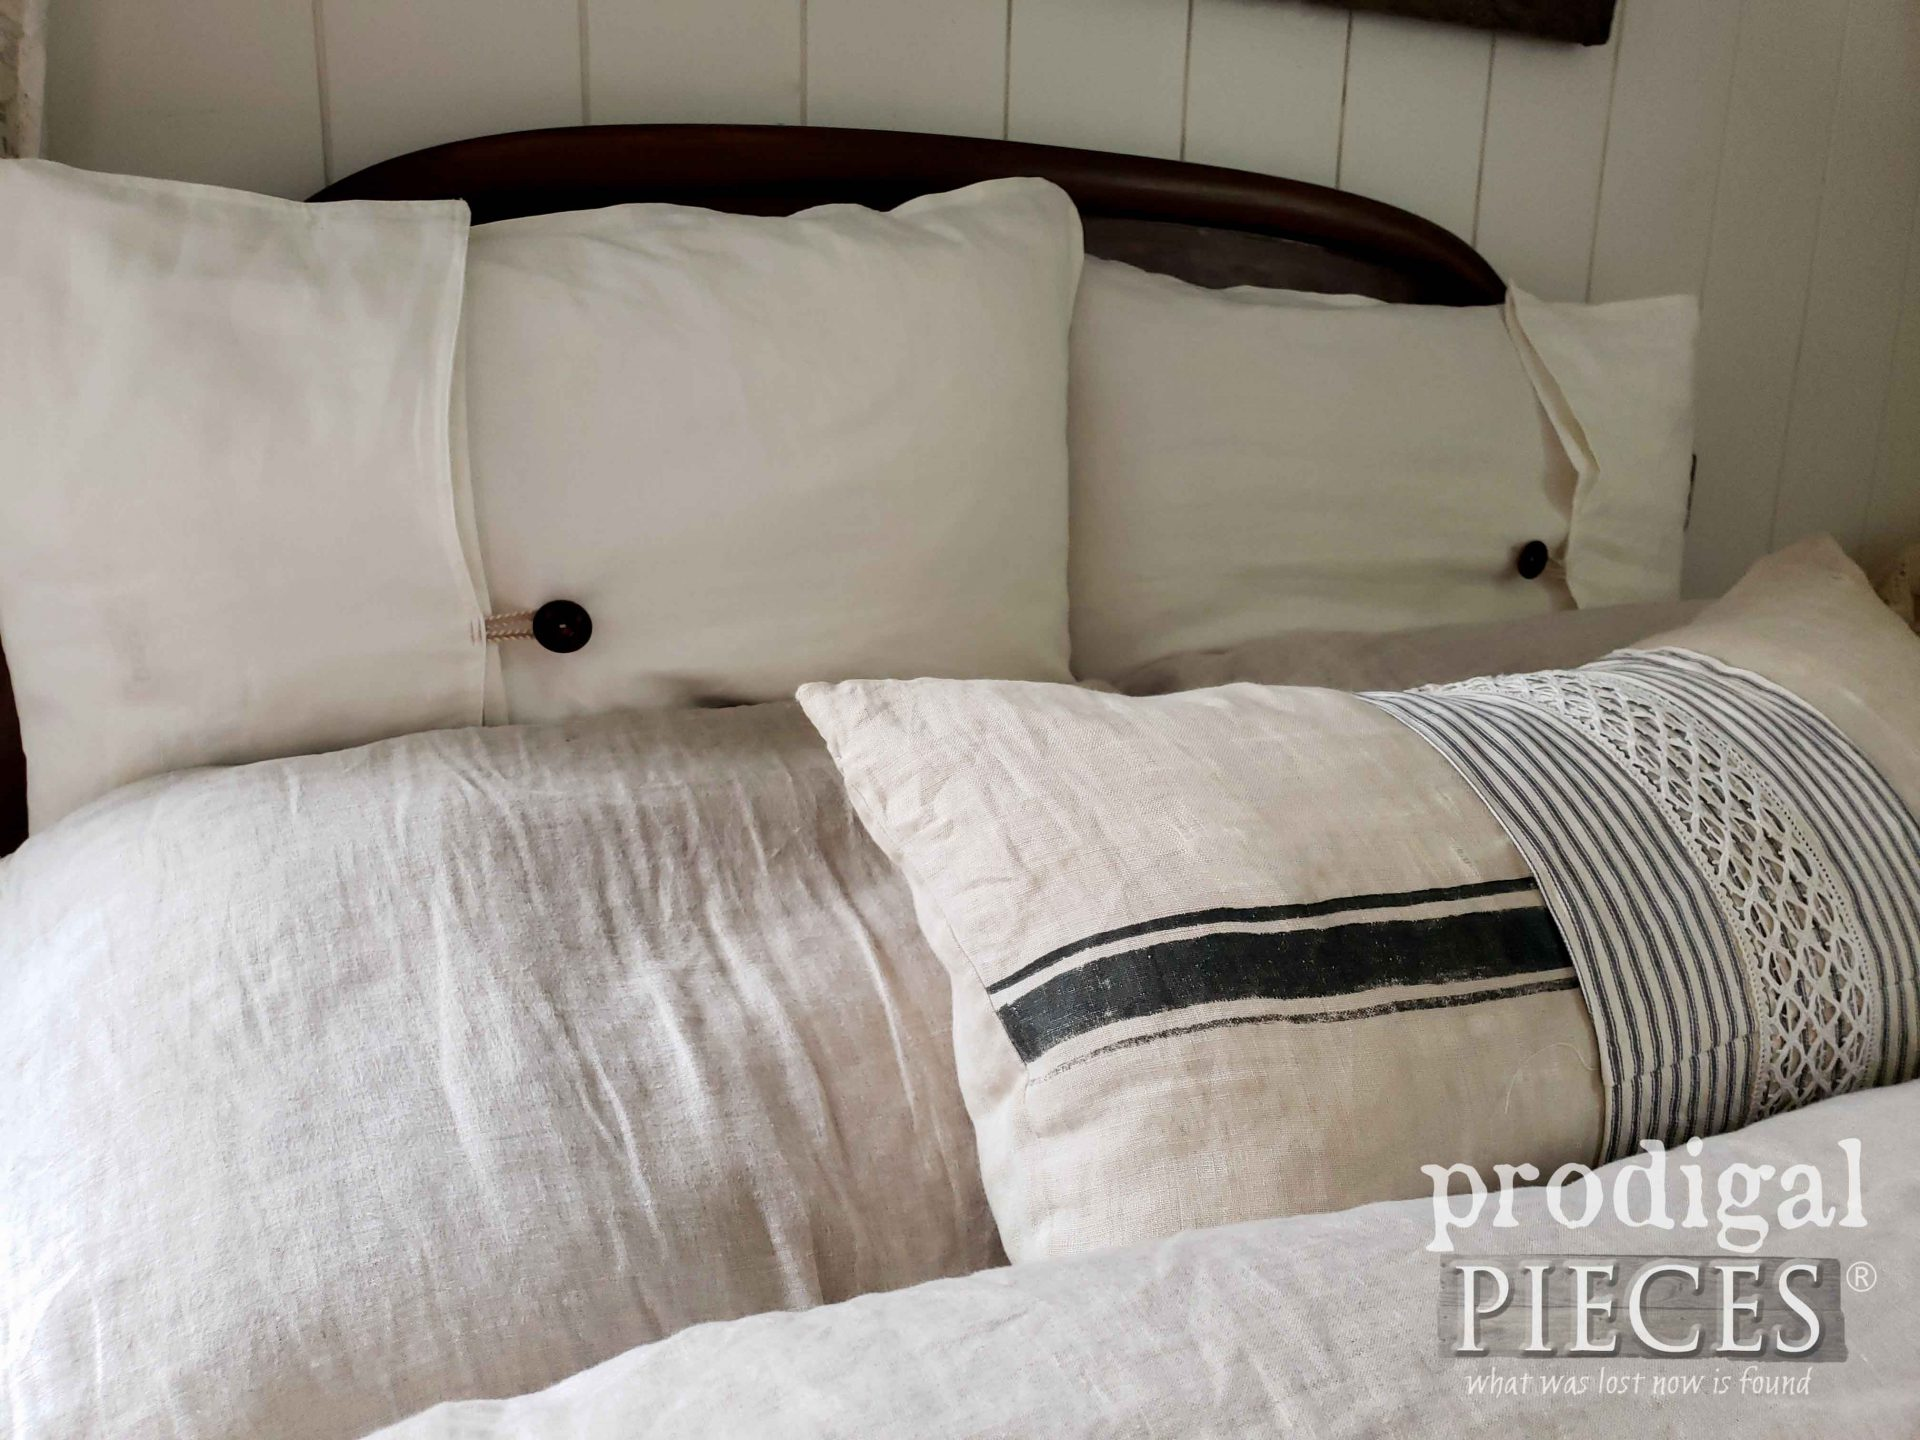 Farmhouse Bed Linens with Handmade Pillows by Larissa of Prodigal Pieces | prodigalpieces.com #prodigalpieces